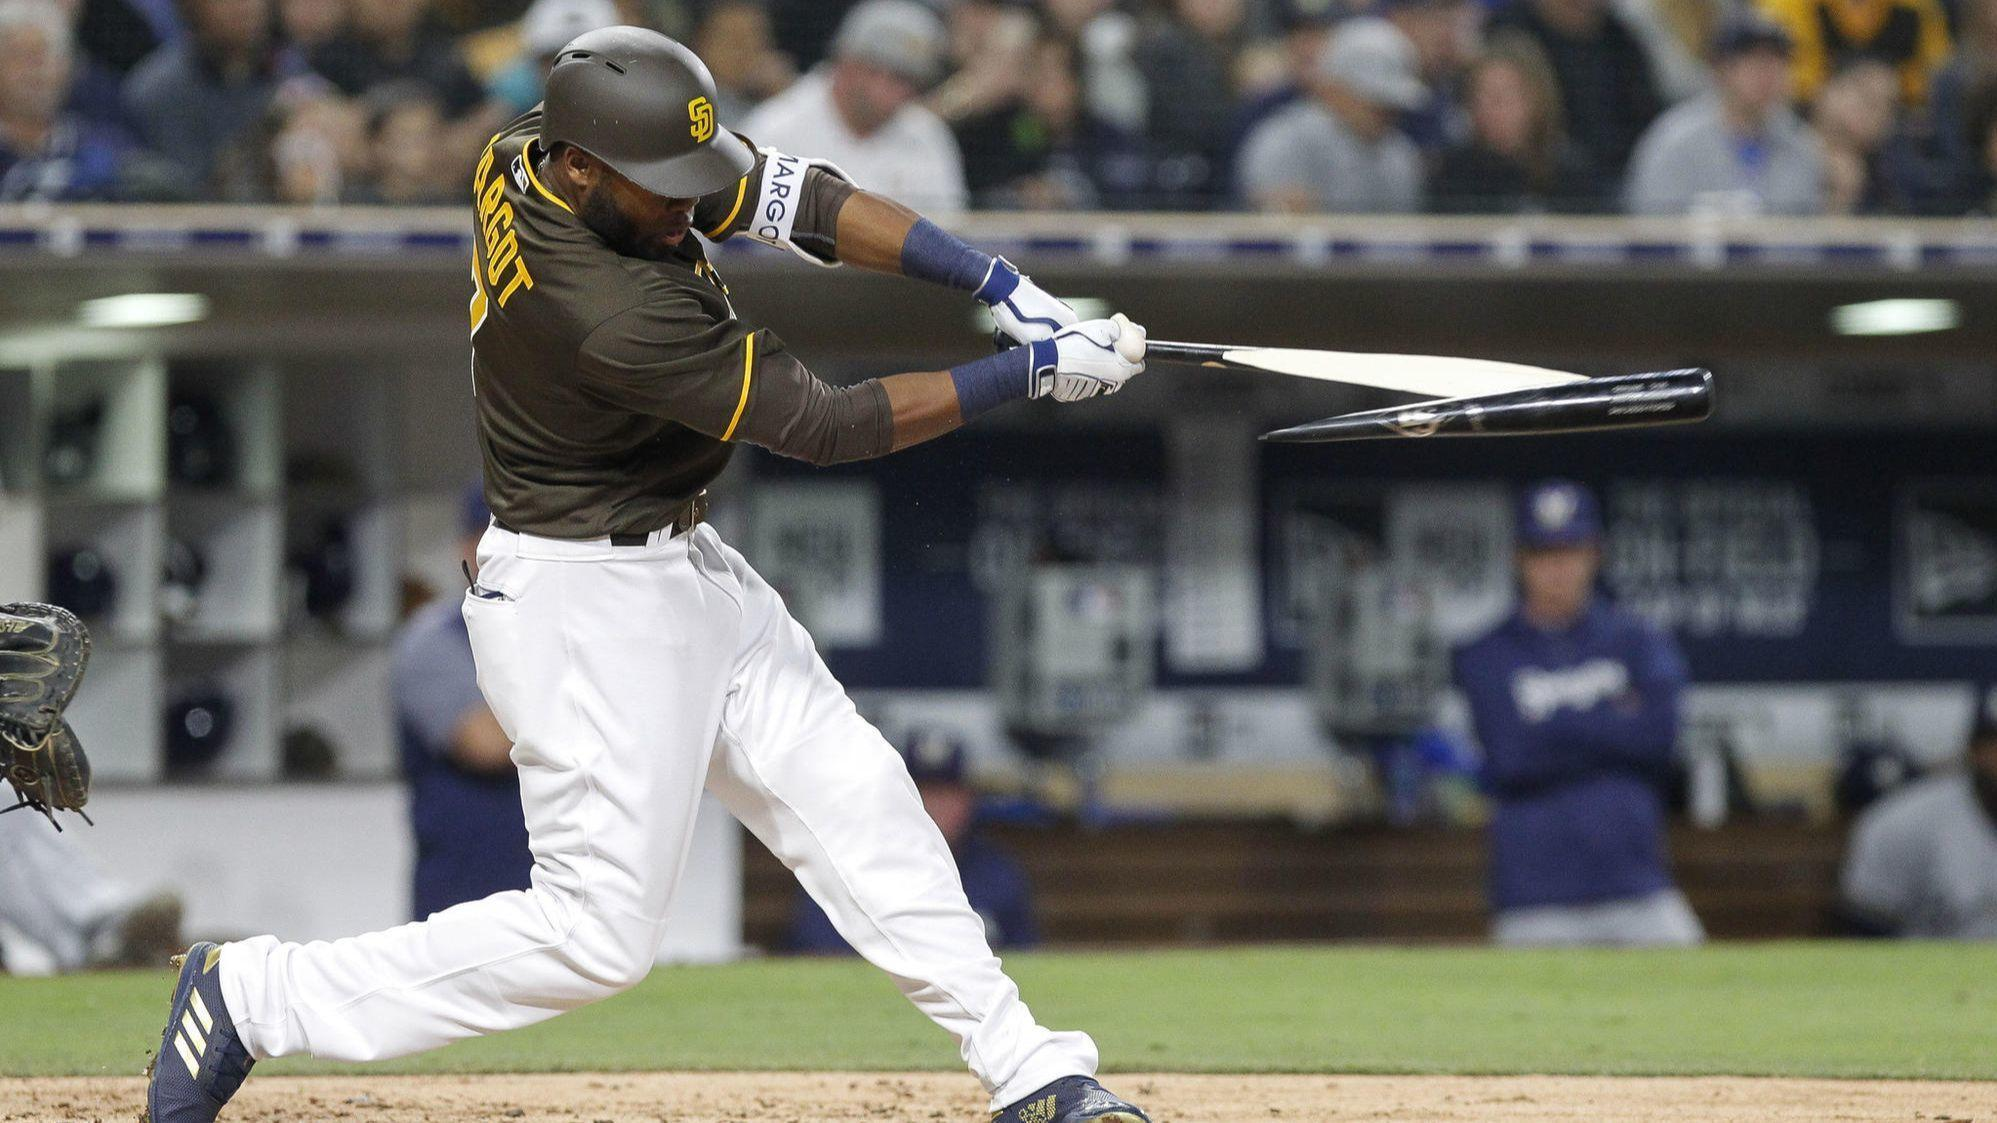 Sd-sp-padres-on-base-improvement-0402